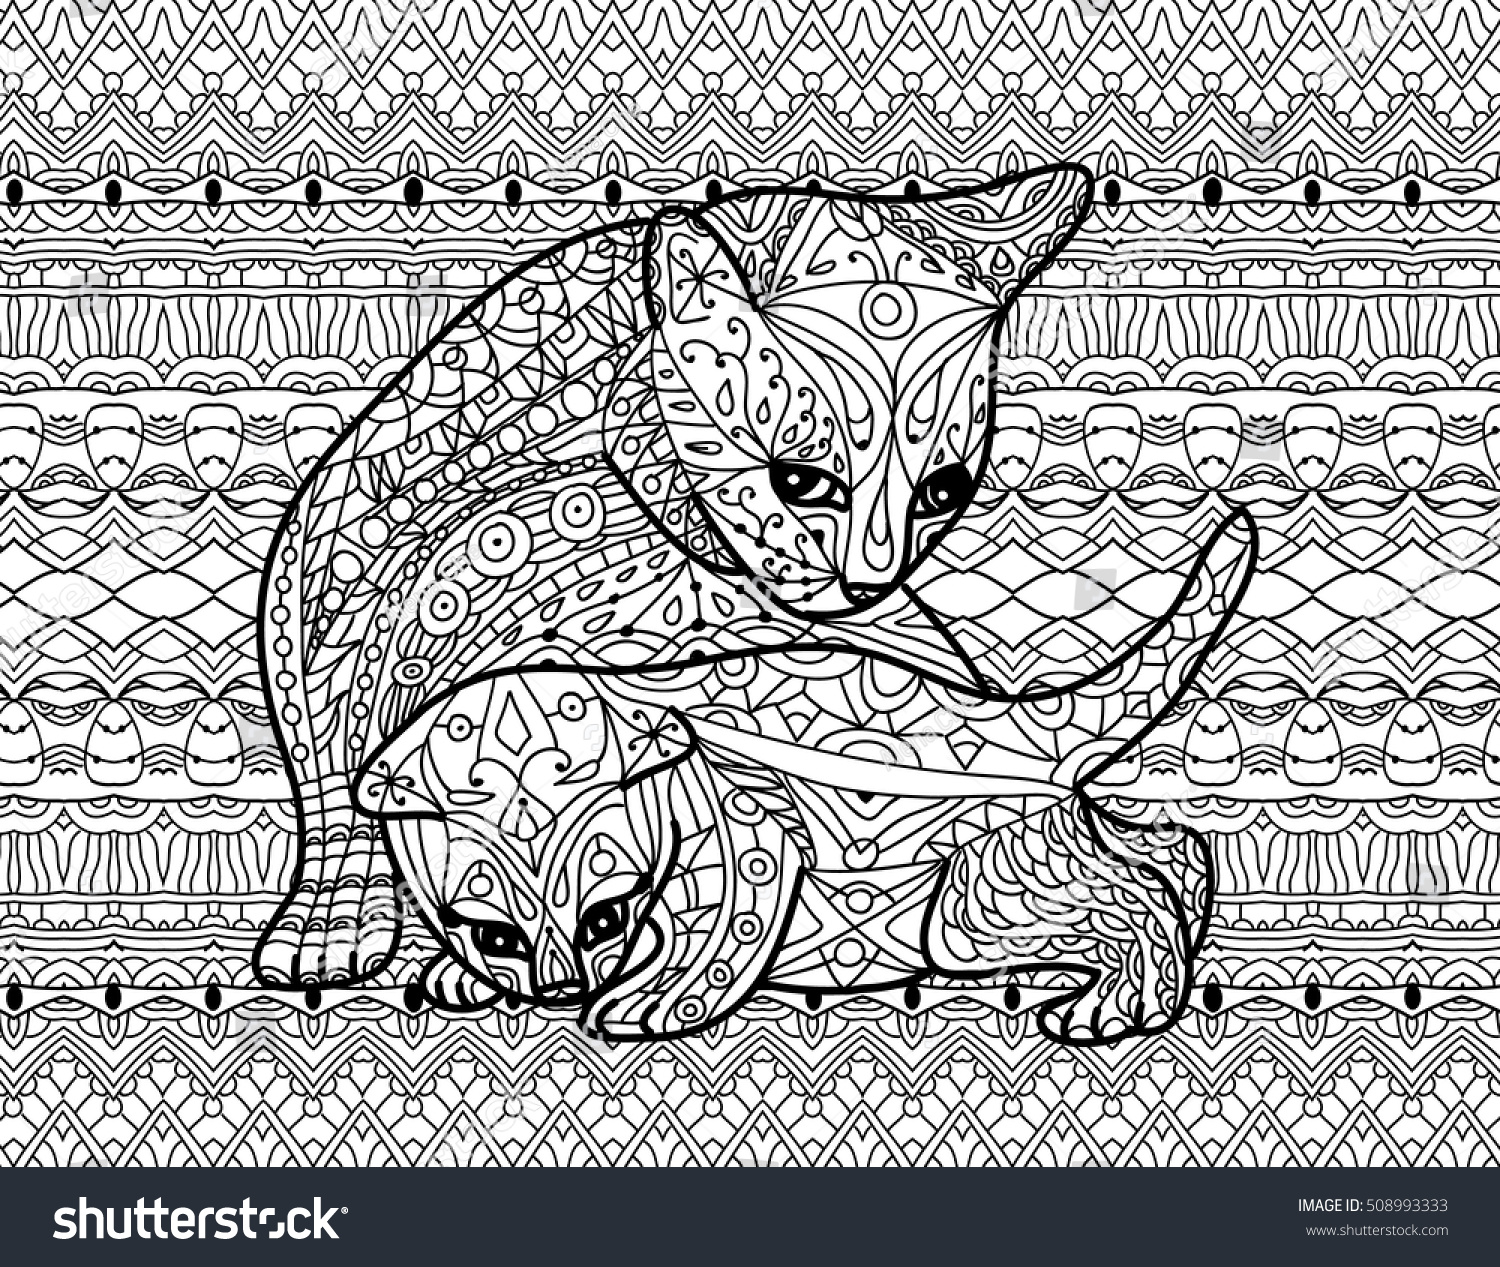 Zendoodle Coloring Book For Adults Mother Cat With Kitten